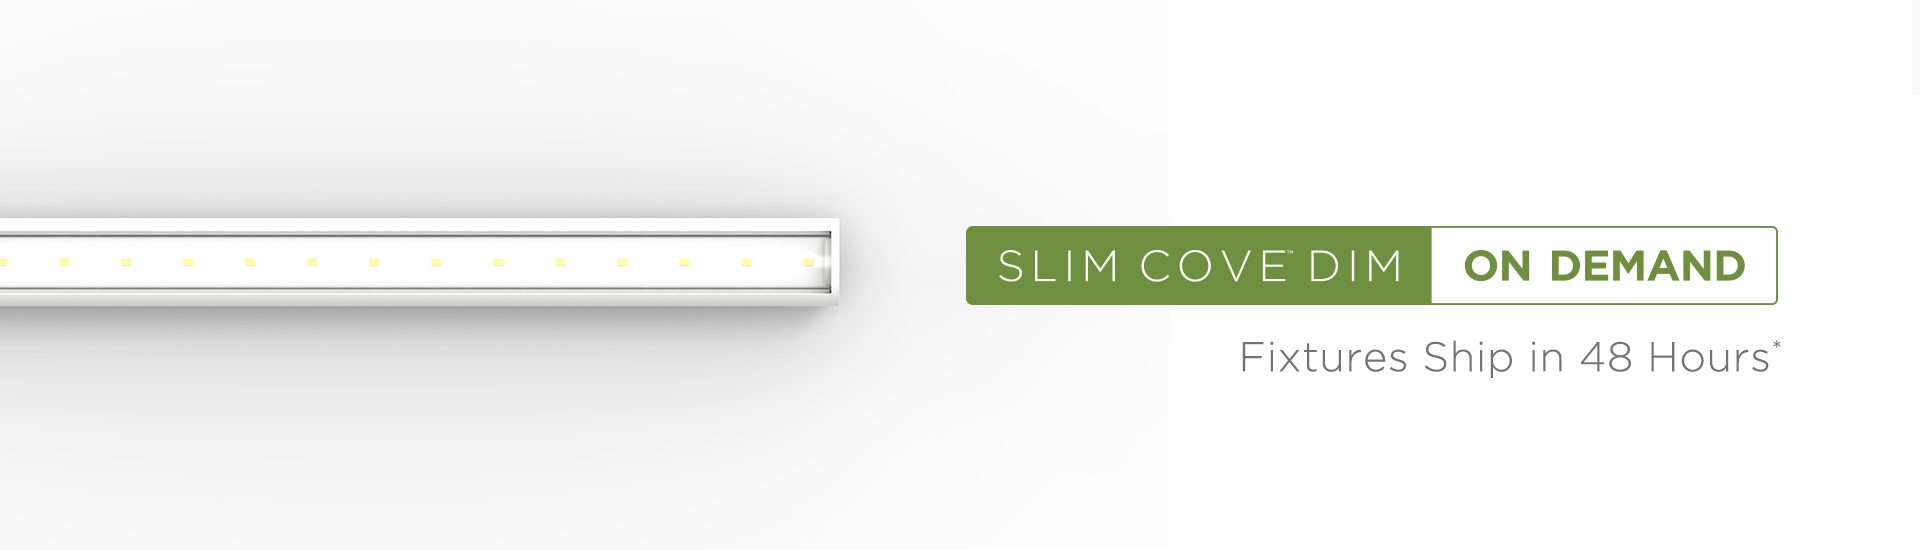 Slim Cove DIM On Demand